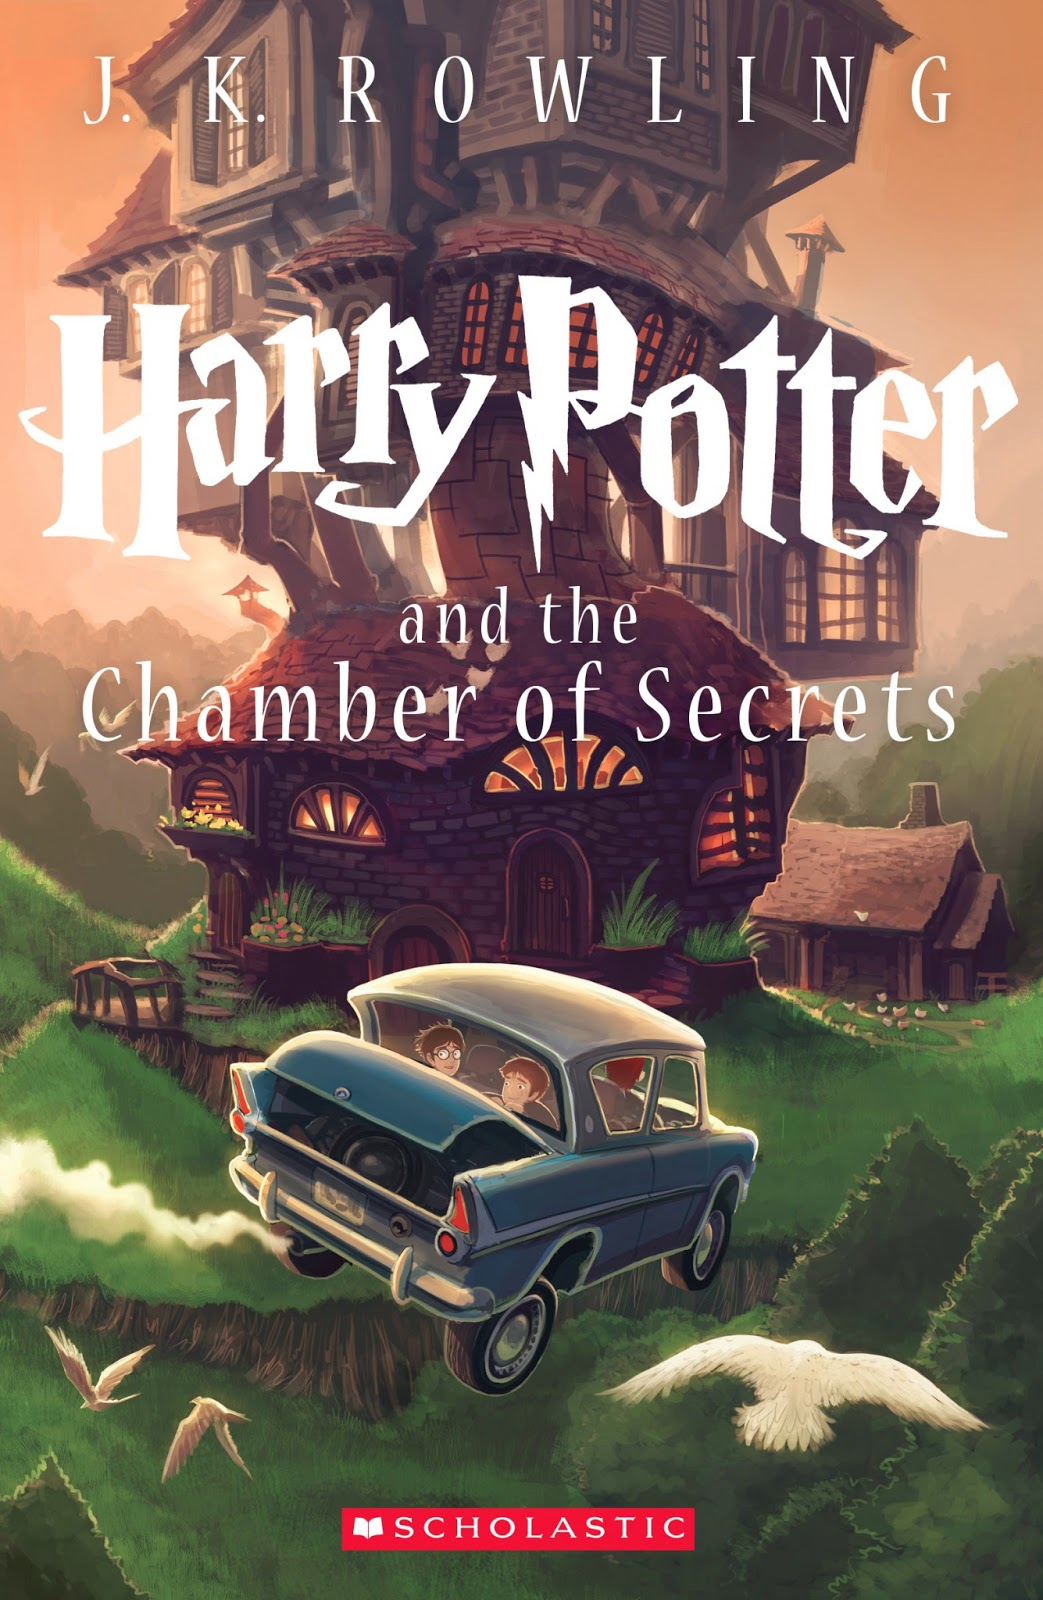 Paperback Book Cover : New special edition cover of harry potter and the chamber